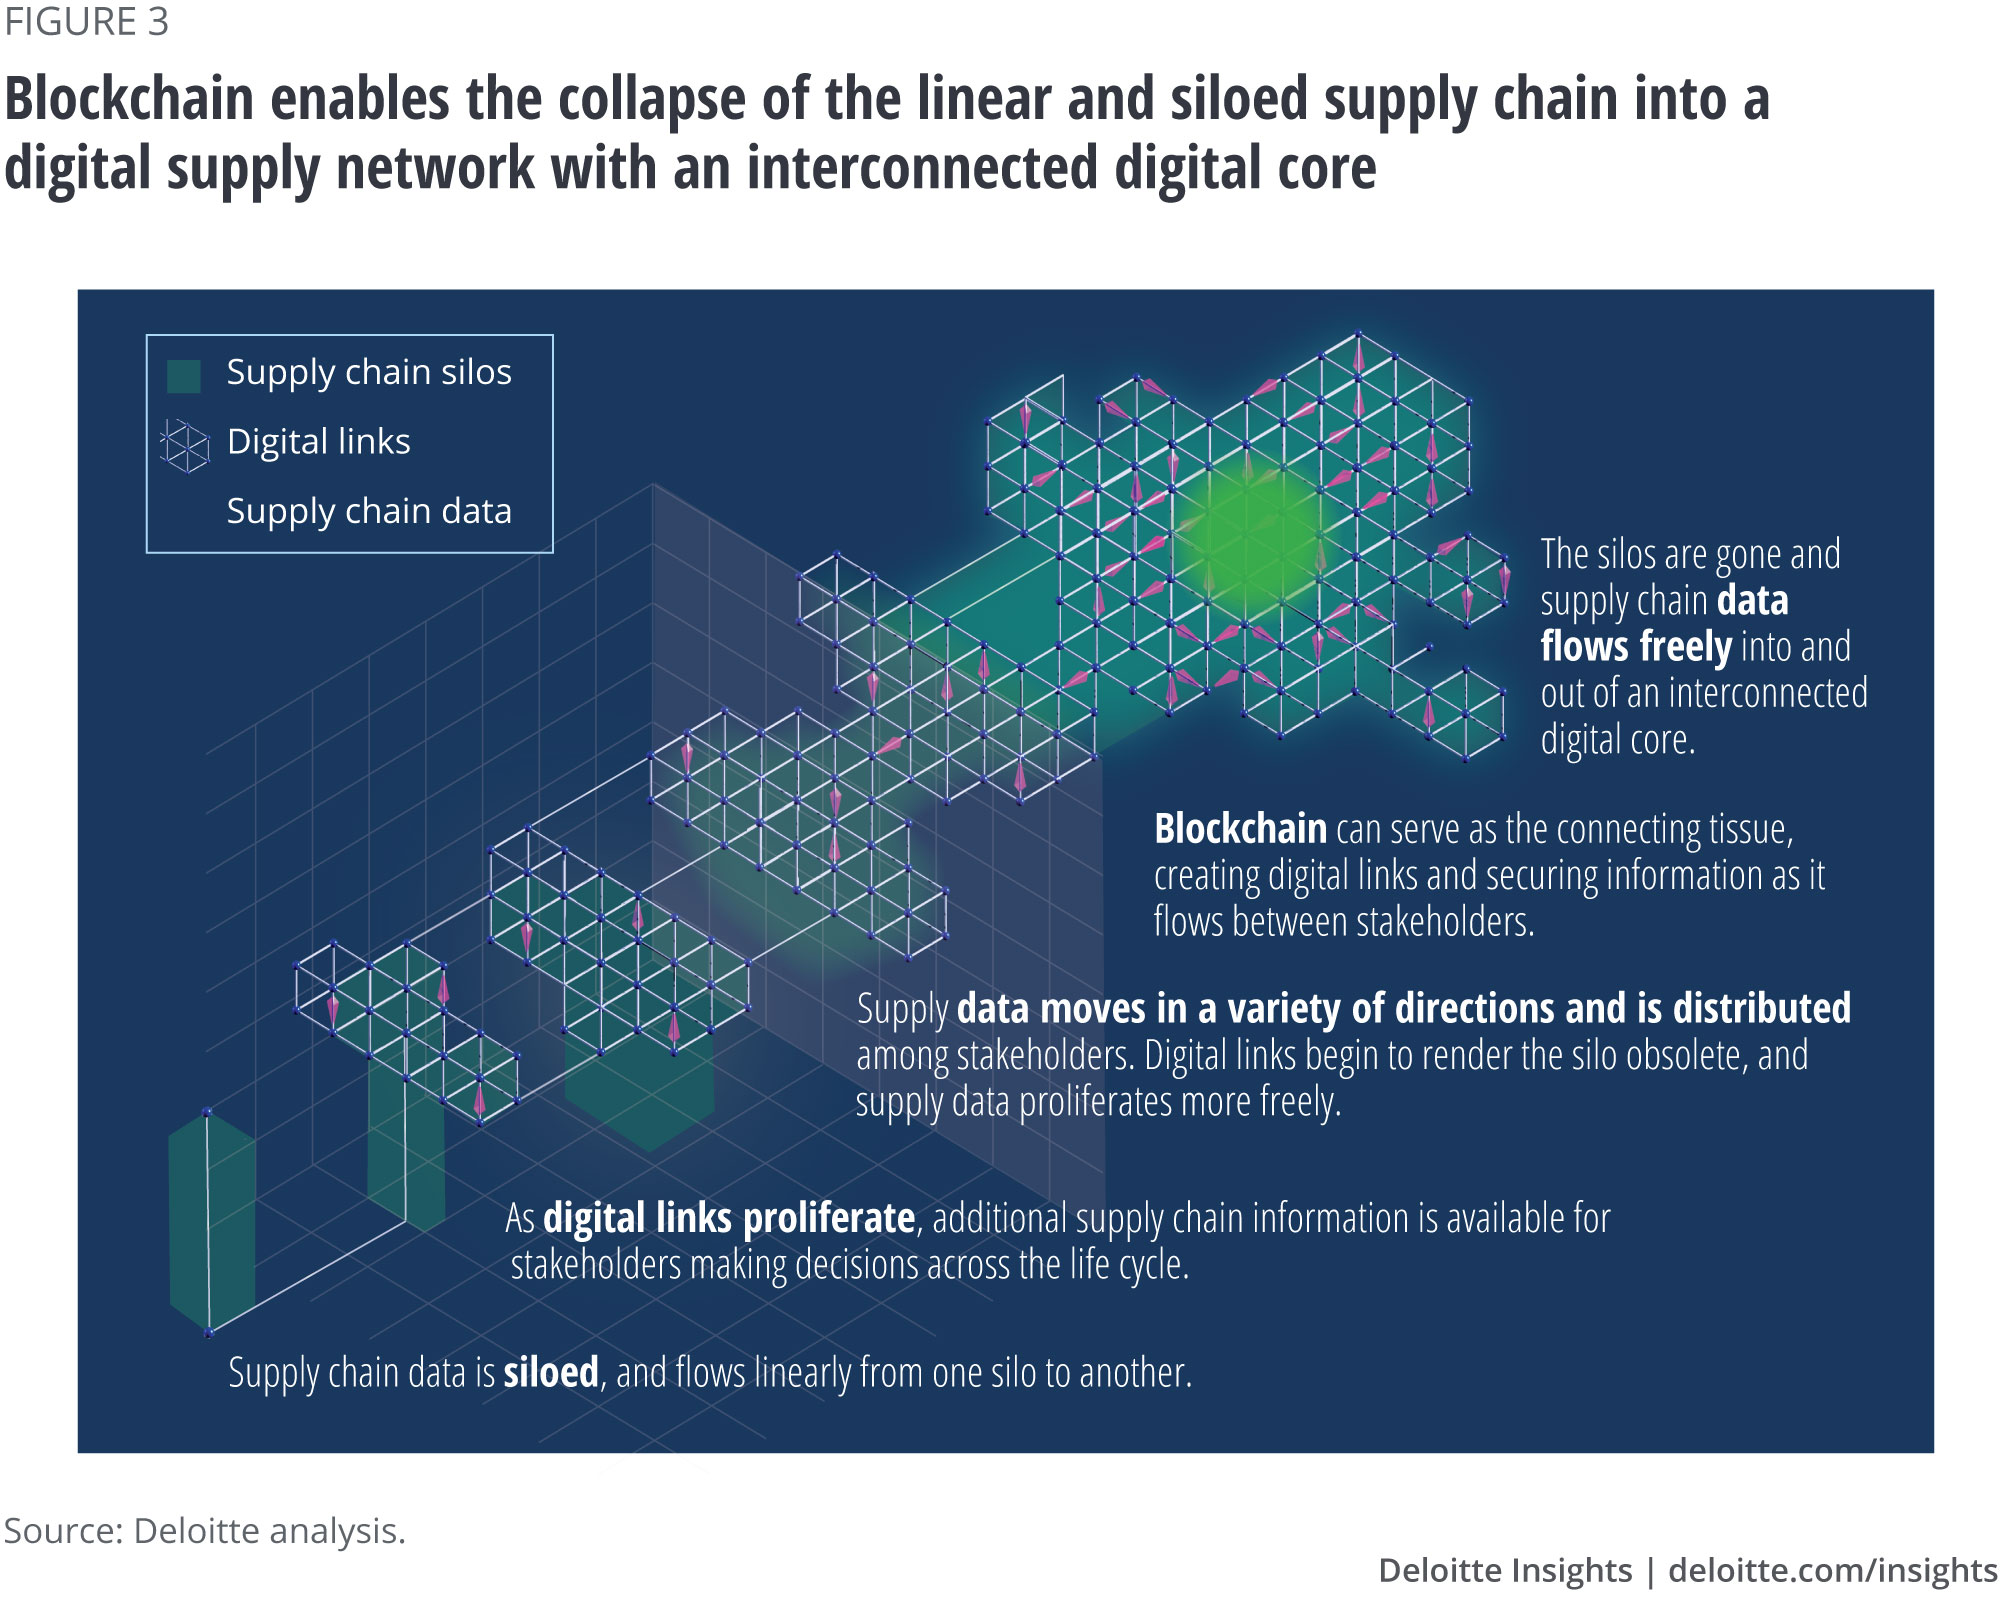 Blockchain enables the collapse of the linear and siloed supply chain into a digital supply network with an interconnected digital core